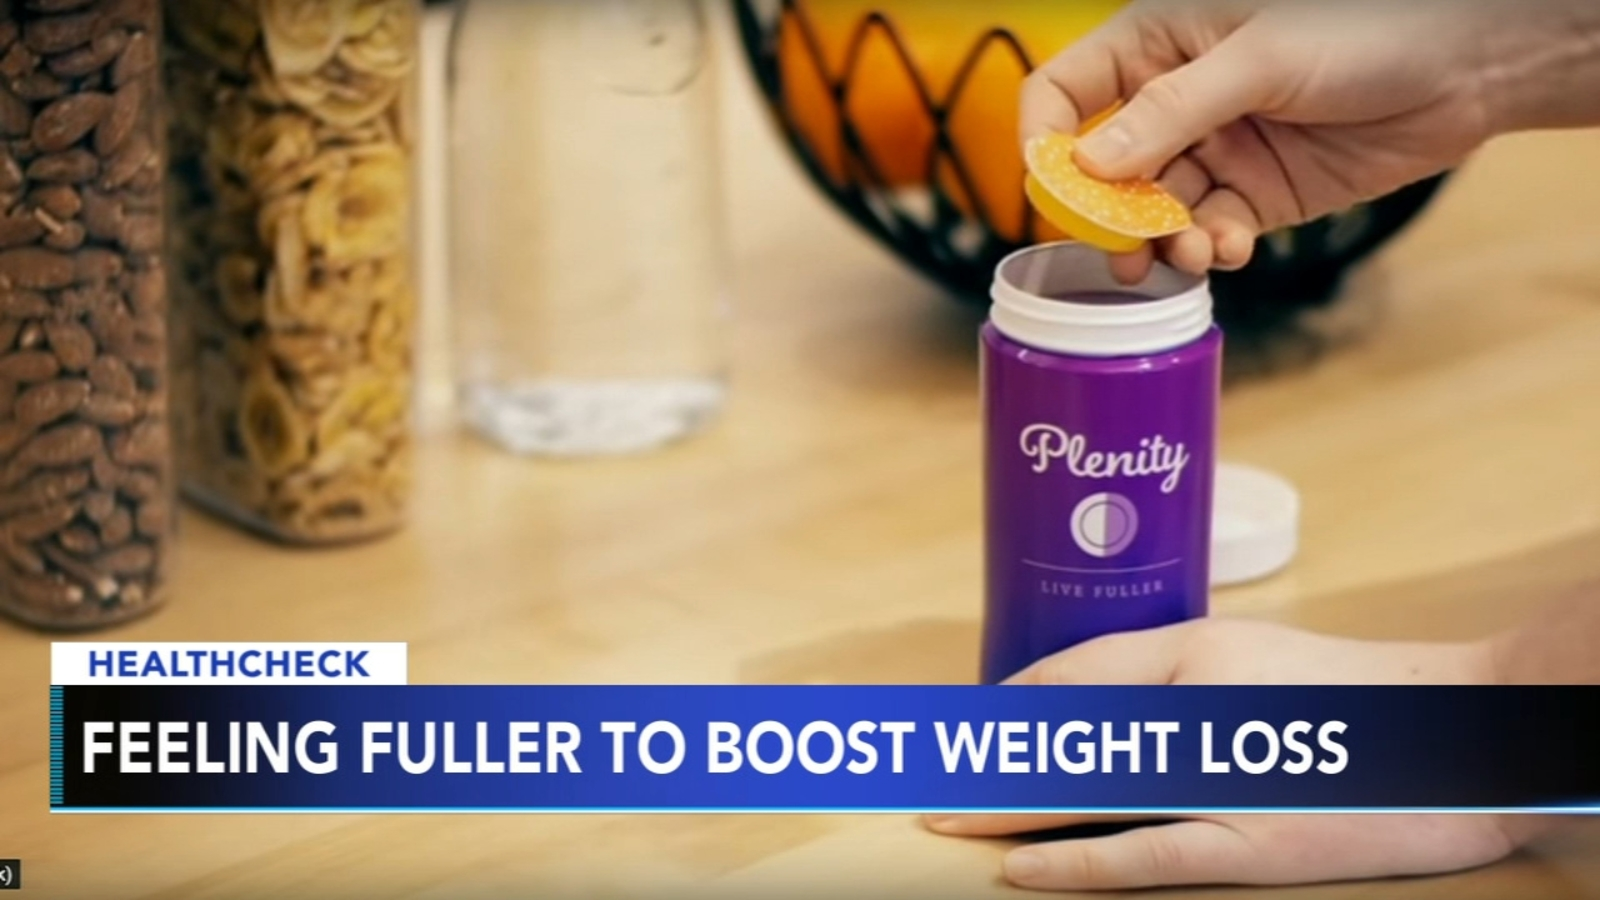 FDA clears new weight loss capsules that help you feel